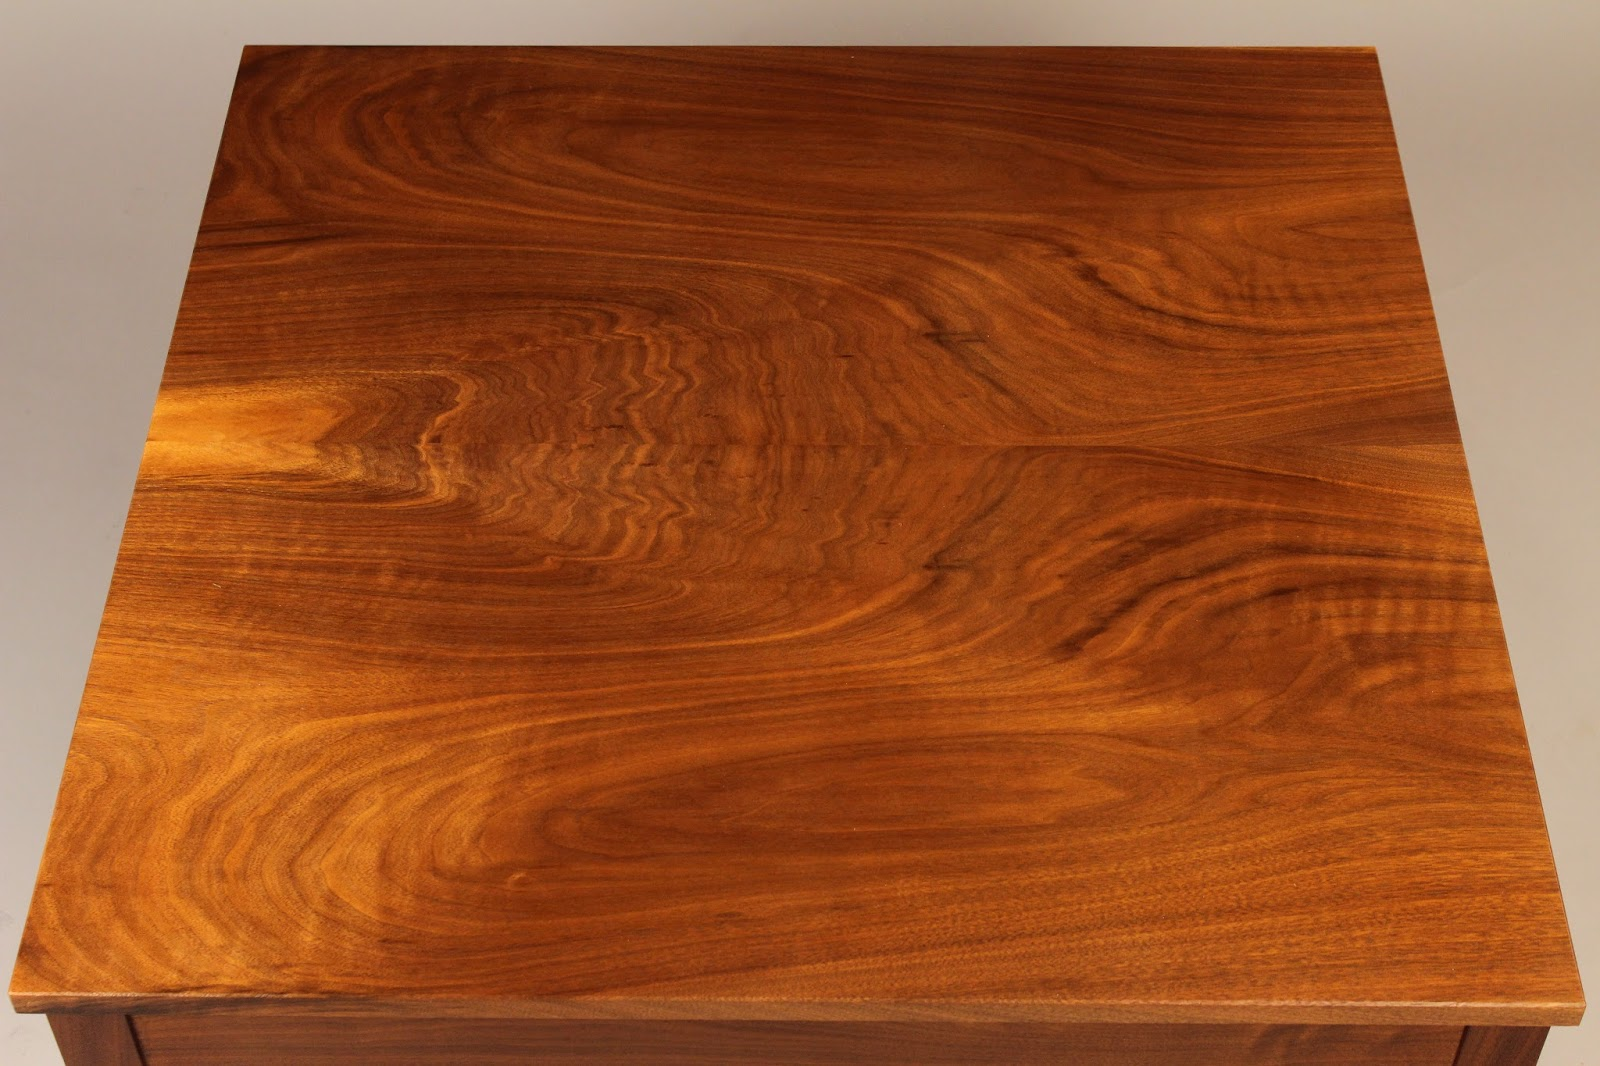 Handmade solid wood Coffee Table Walnut Tiger Maple Cherry Mahogany